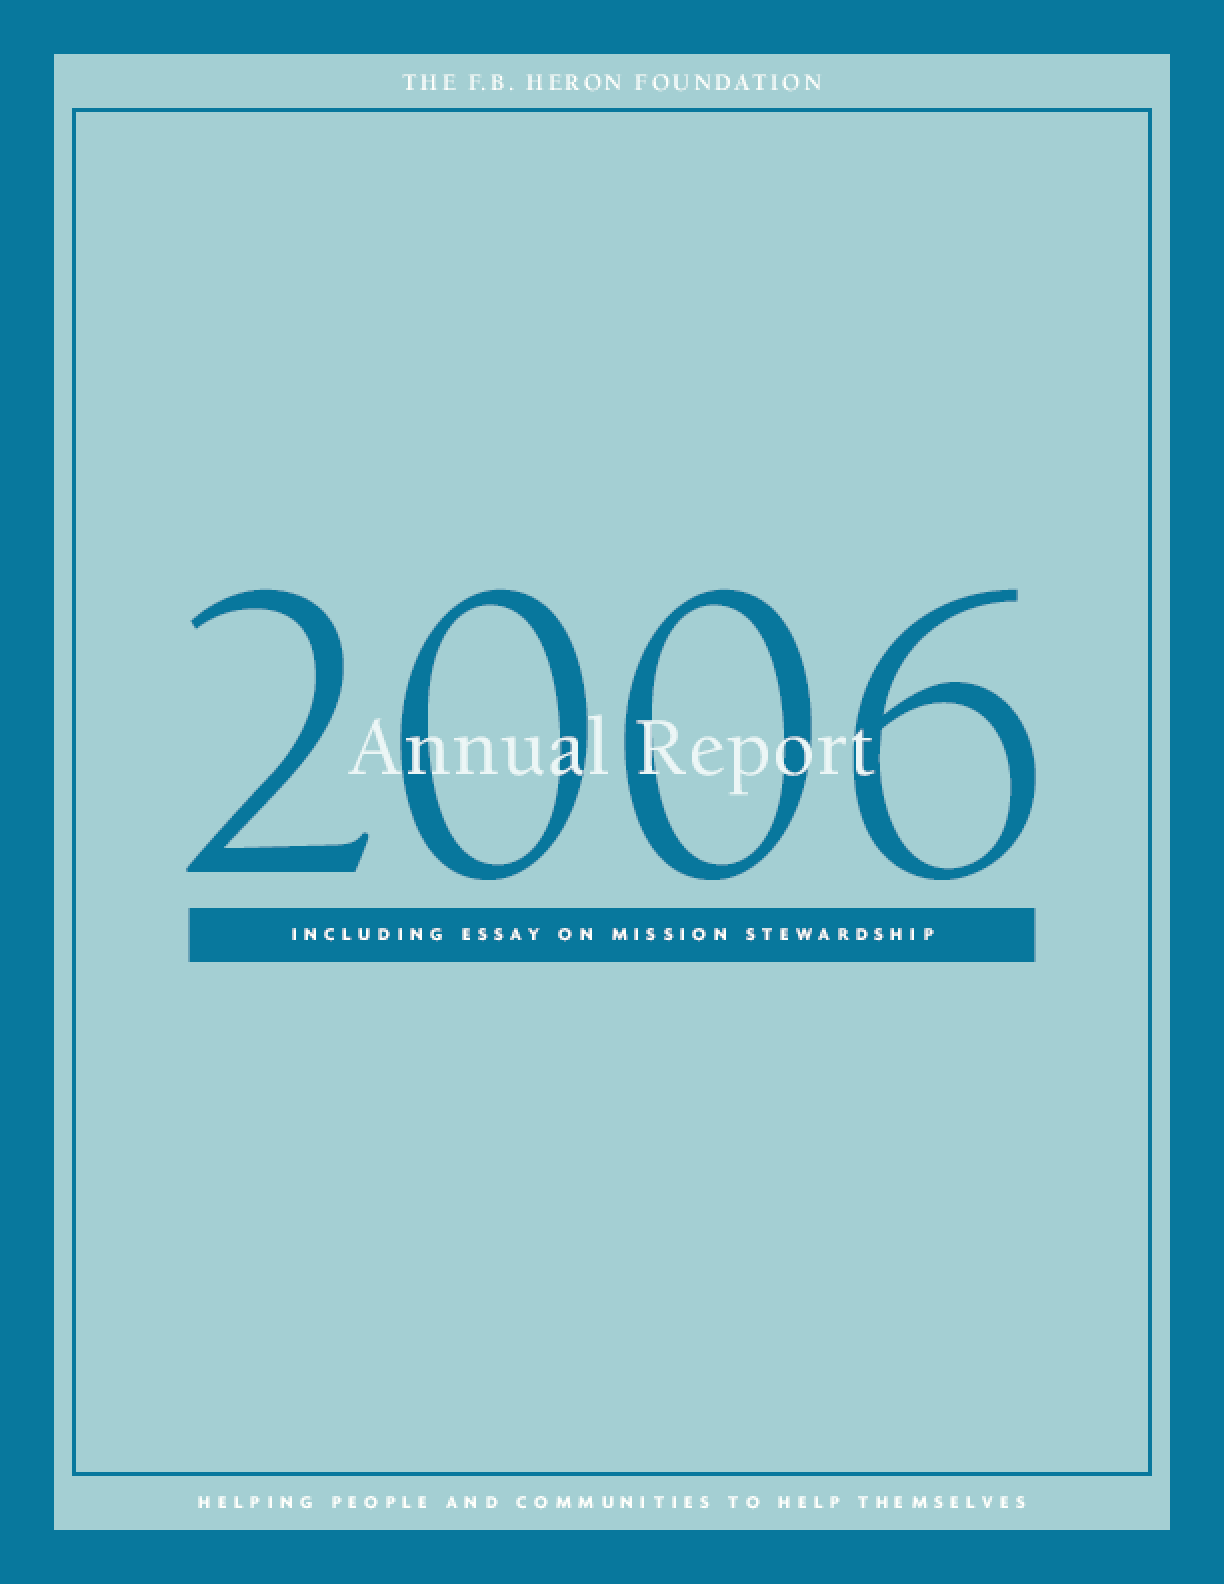 F.B. Heron Foundation Annual Report 2006